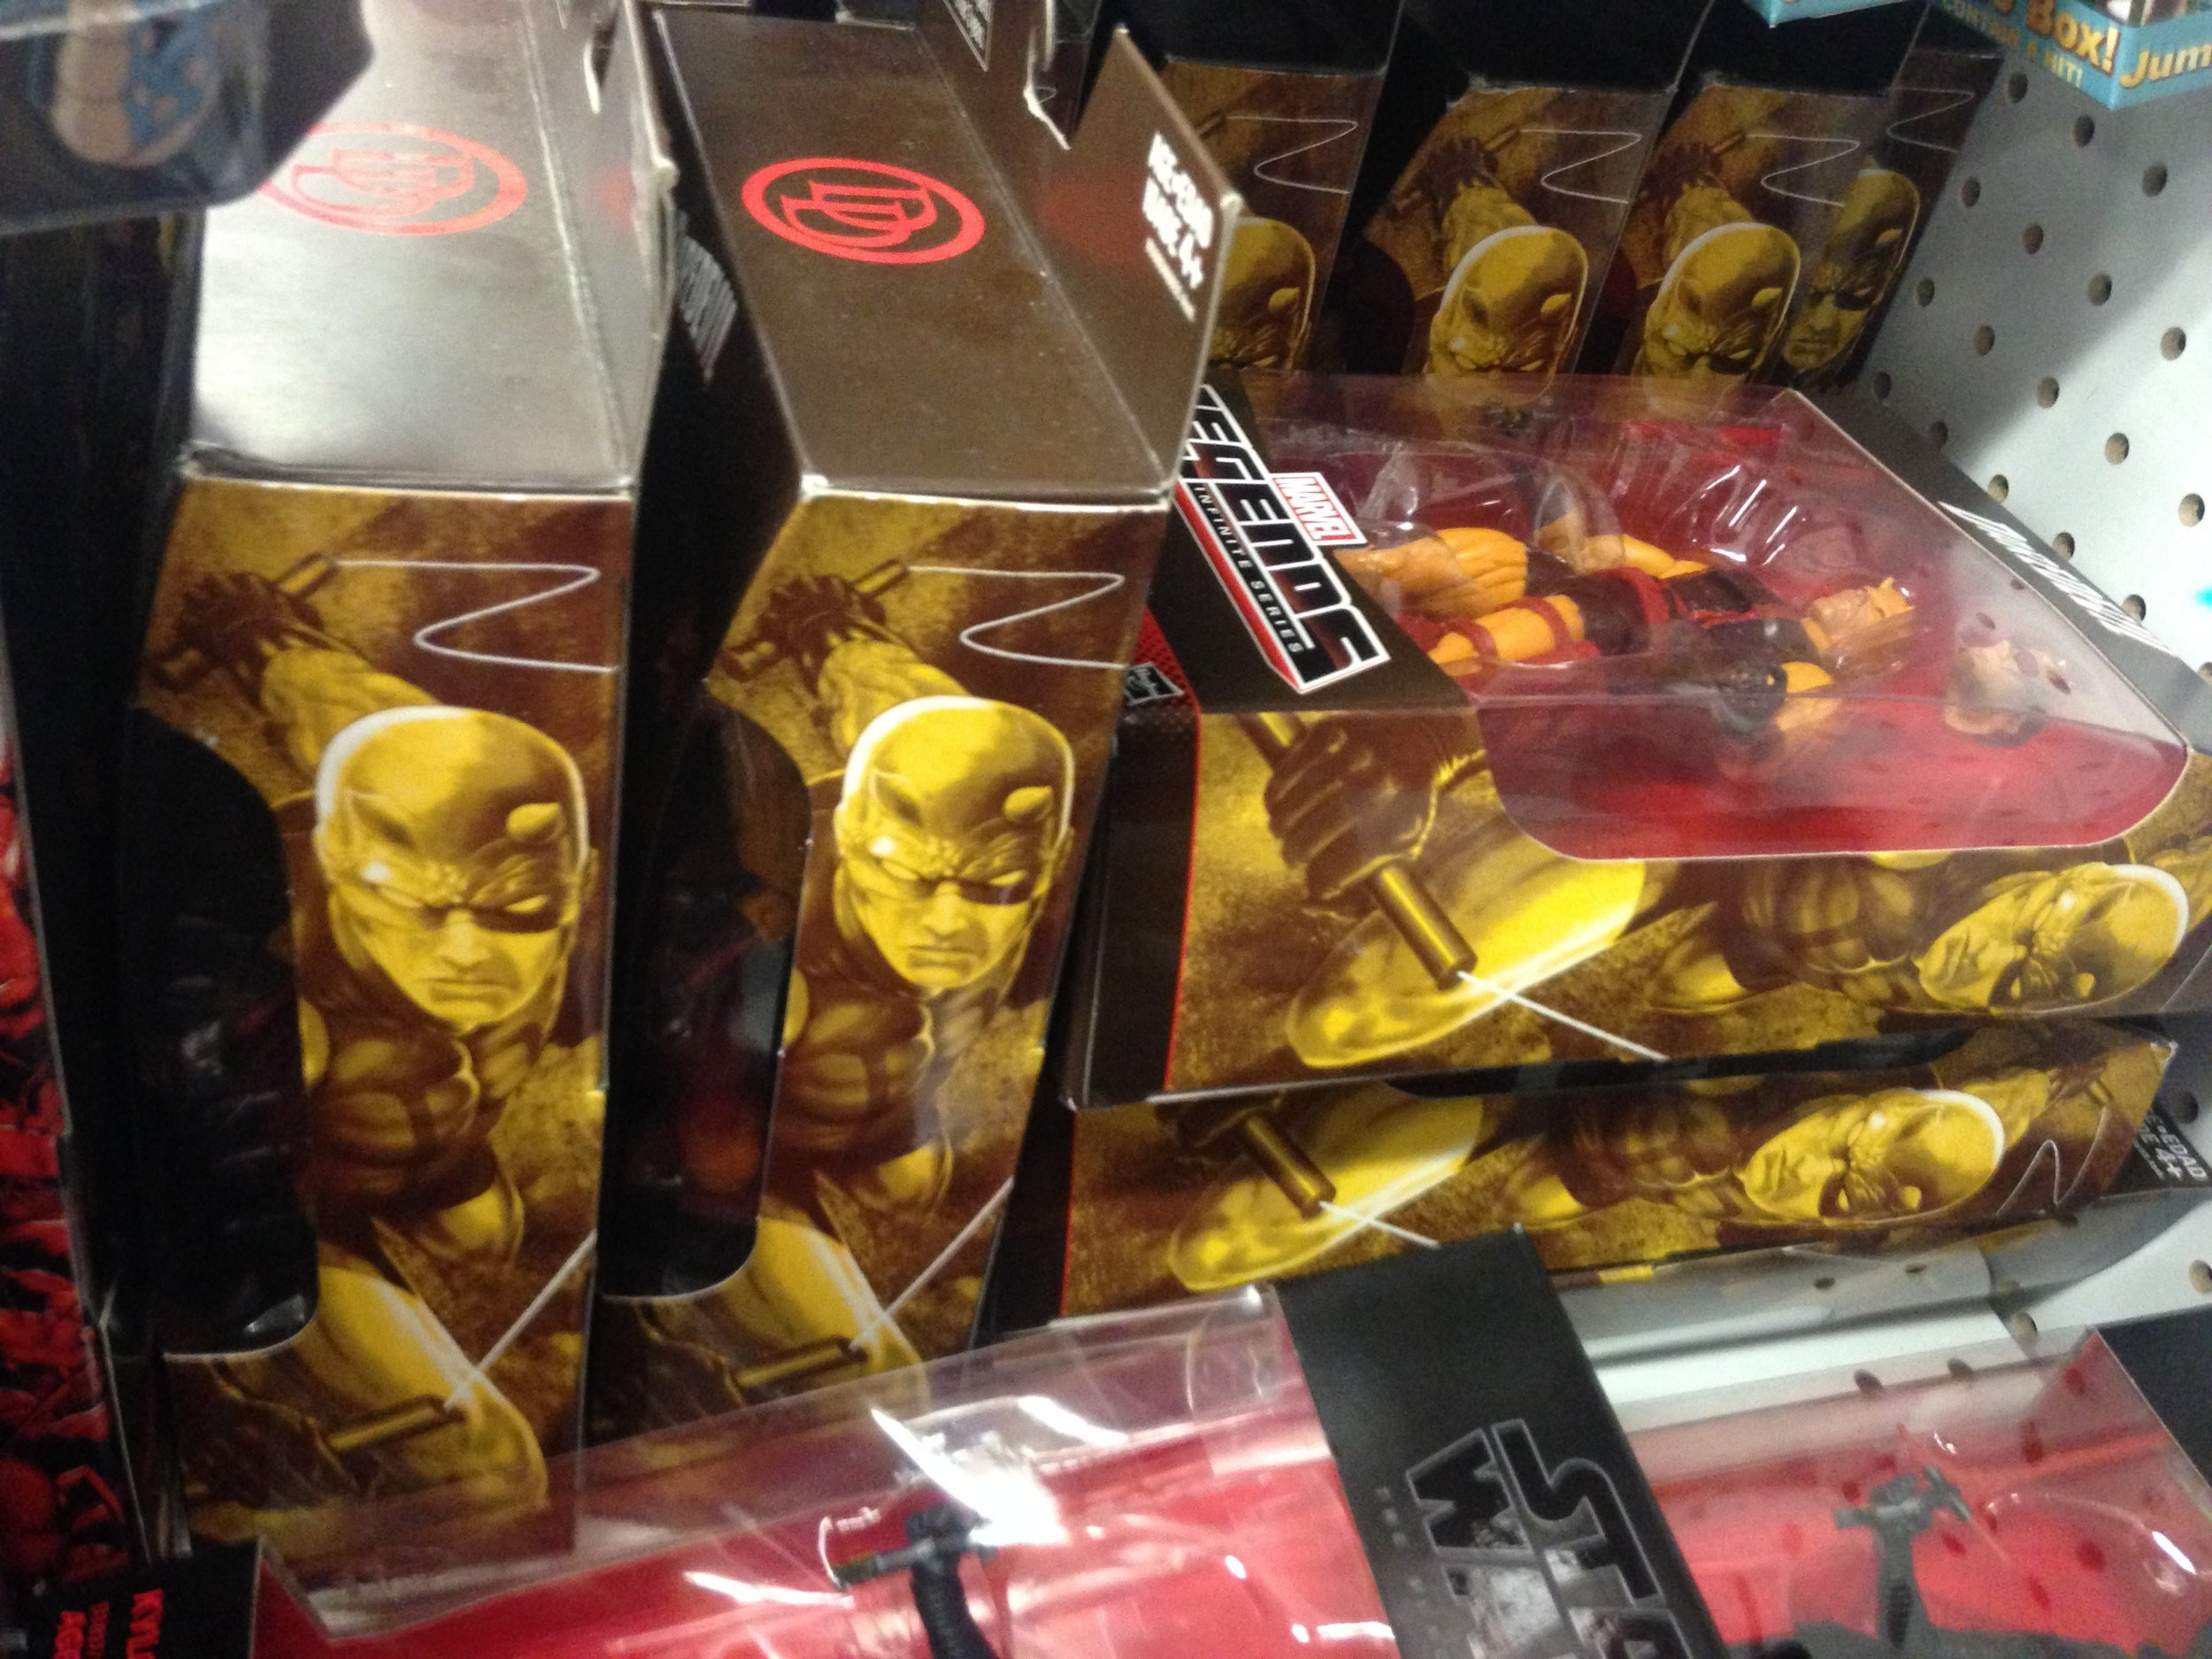 Yellow suit Daredevil, anyone?